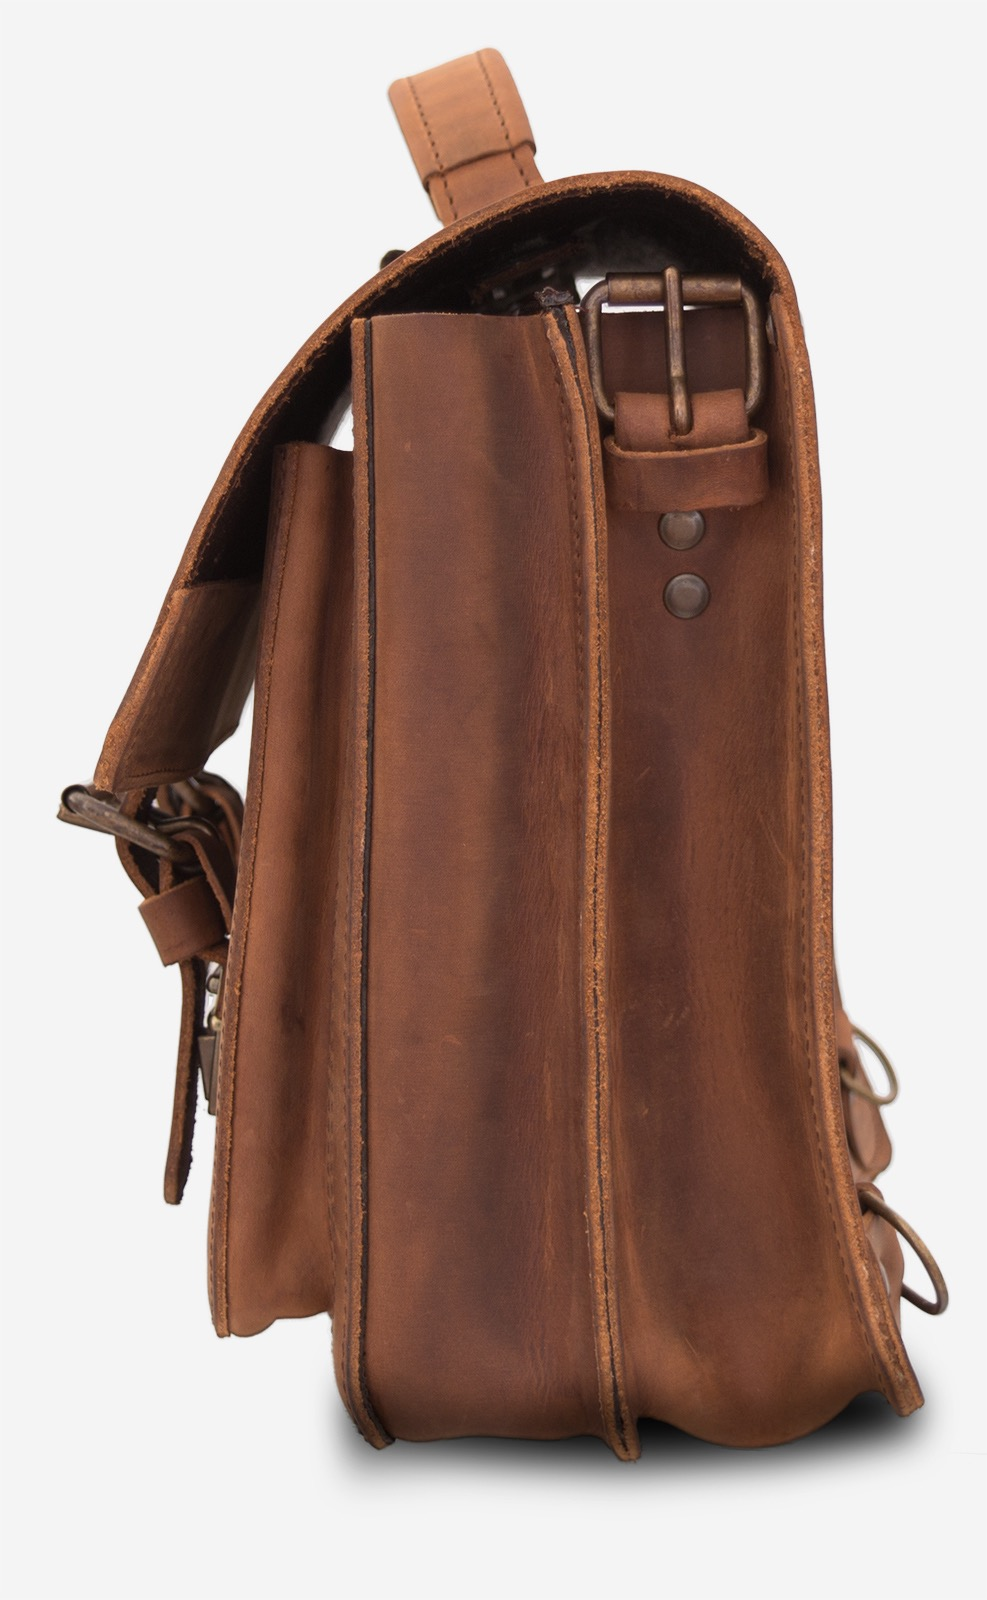 Side view of the student brown leather satchel with 2 compartments and a front pocket.